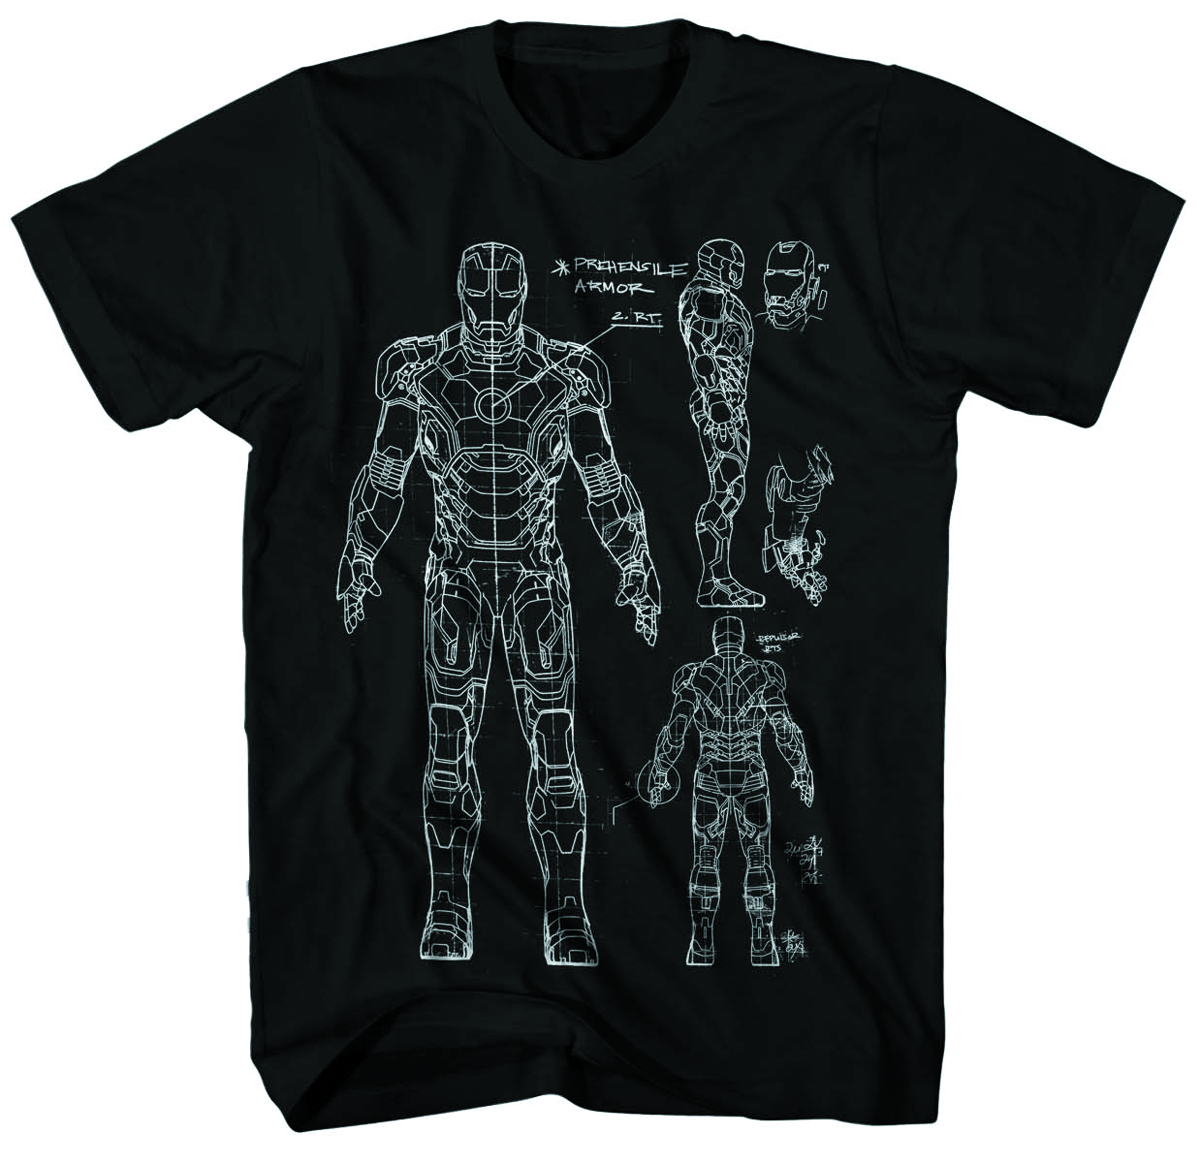 IRON MAN 3 BLUEPRINT-M PX BLK T/S MED